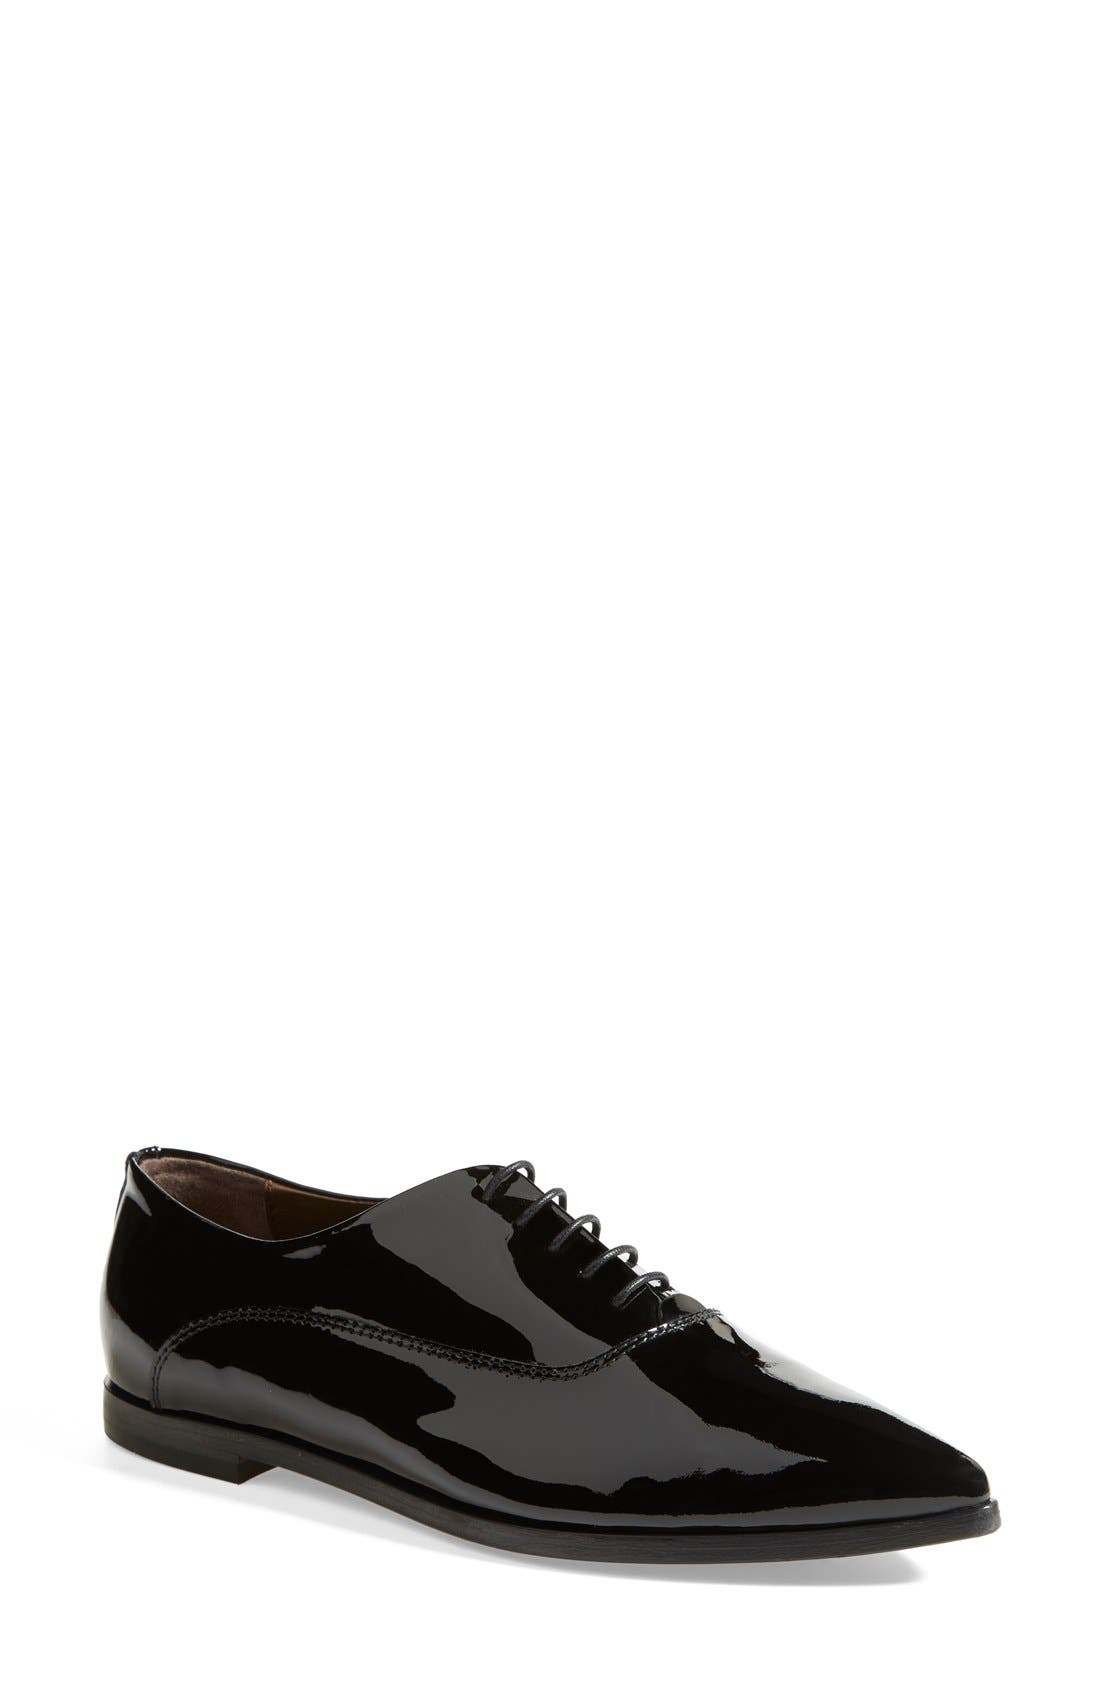 AGL,                             Attilio Giusti Leombruni Patent Leather Pointy Toe Oxford,                             Main thumbnail 1, color,                             001